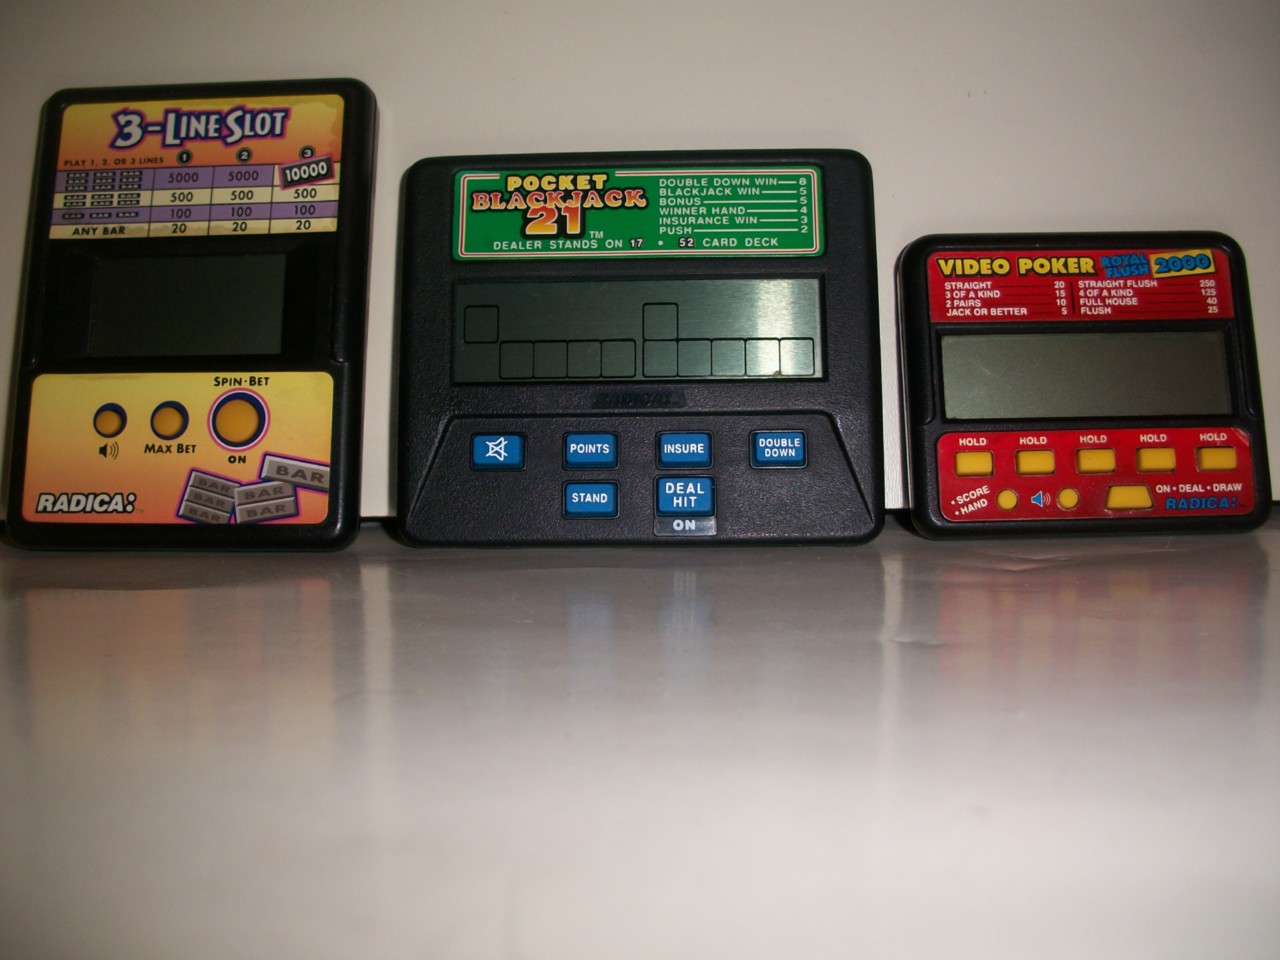 Solitaire Handheld Electronic Game Handheld Games Solitaire